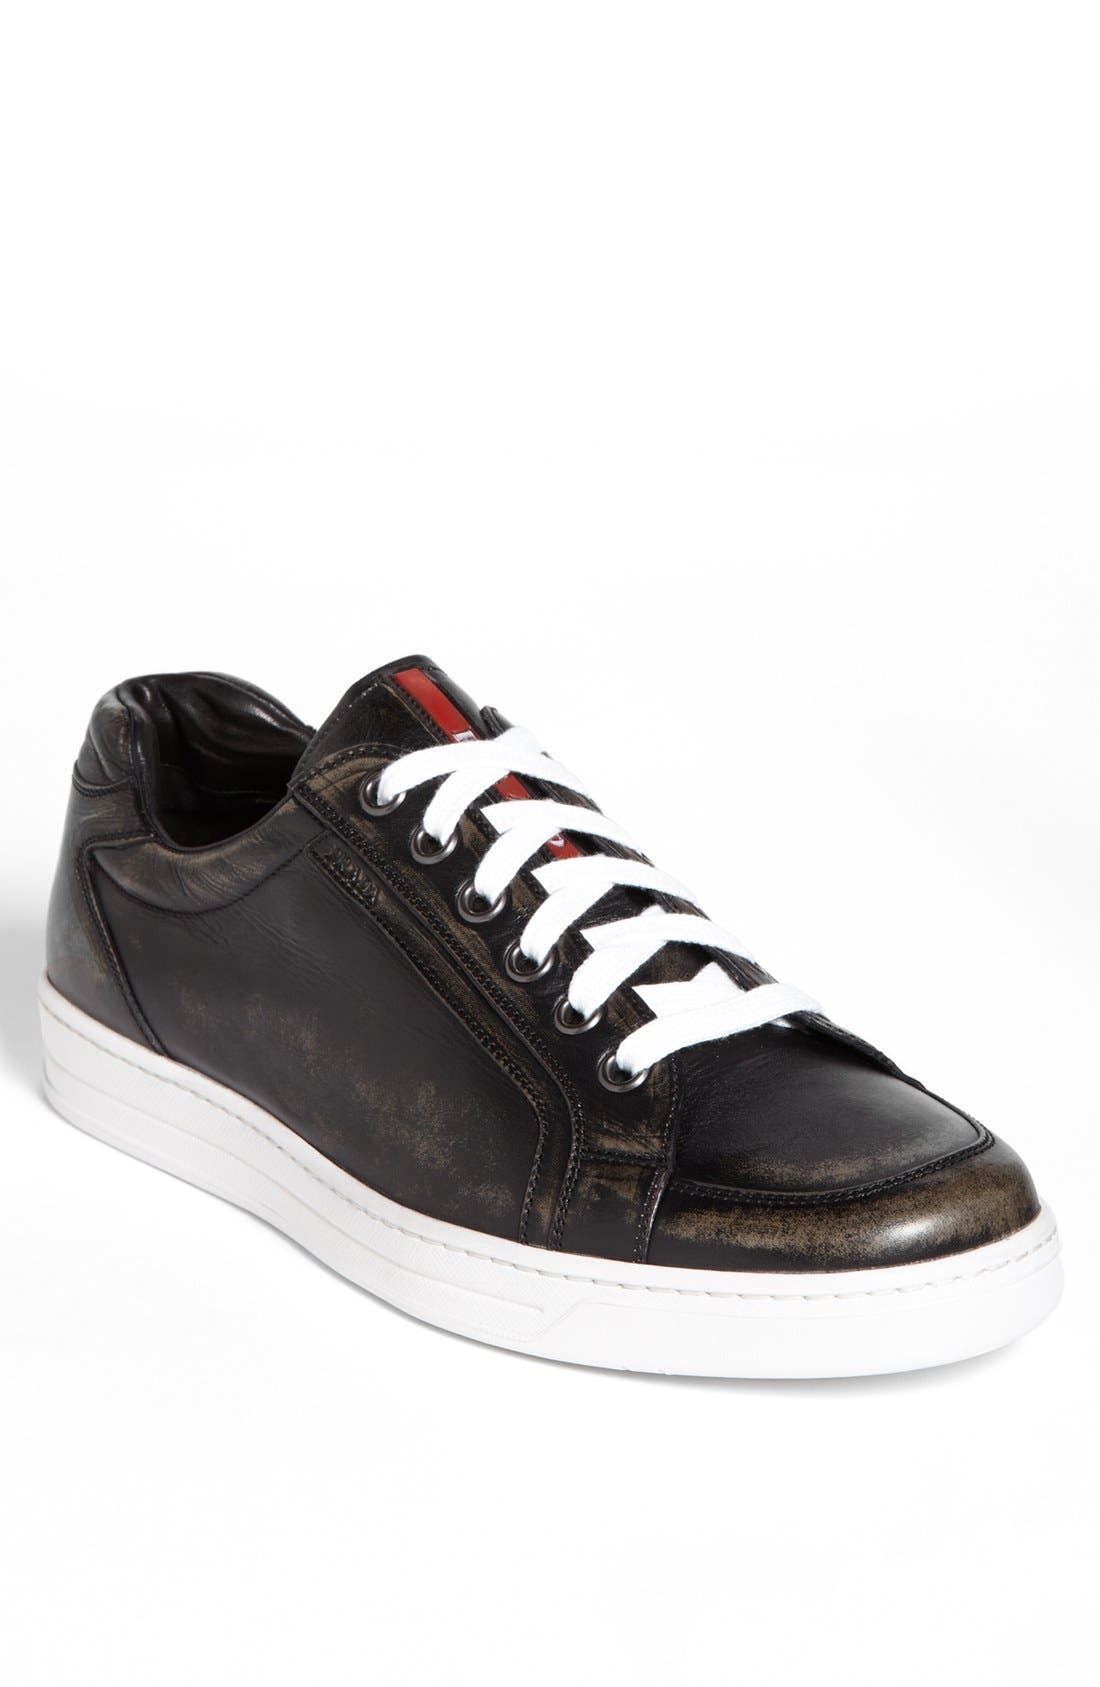 Alternate Image 1 Selected - Prada 'Avenue' Sneaker